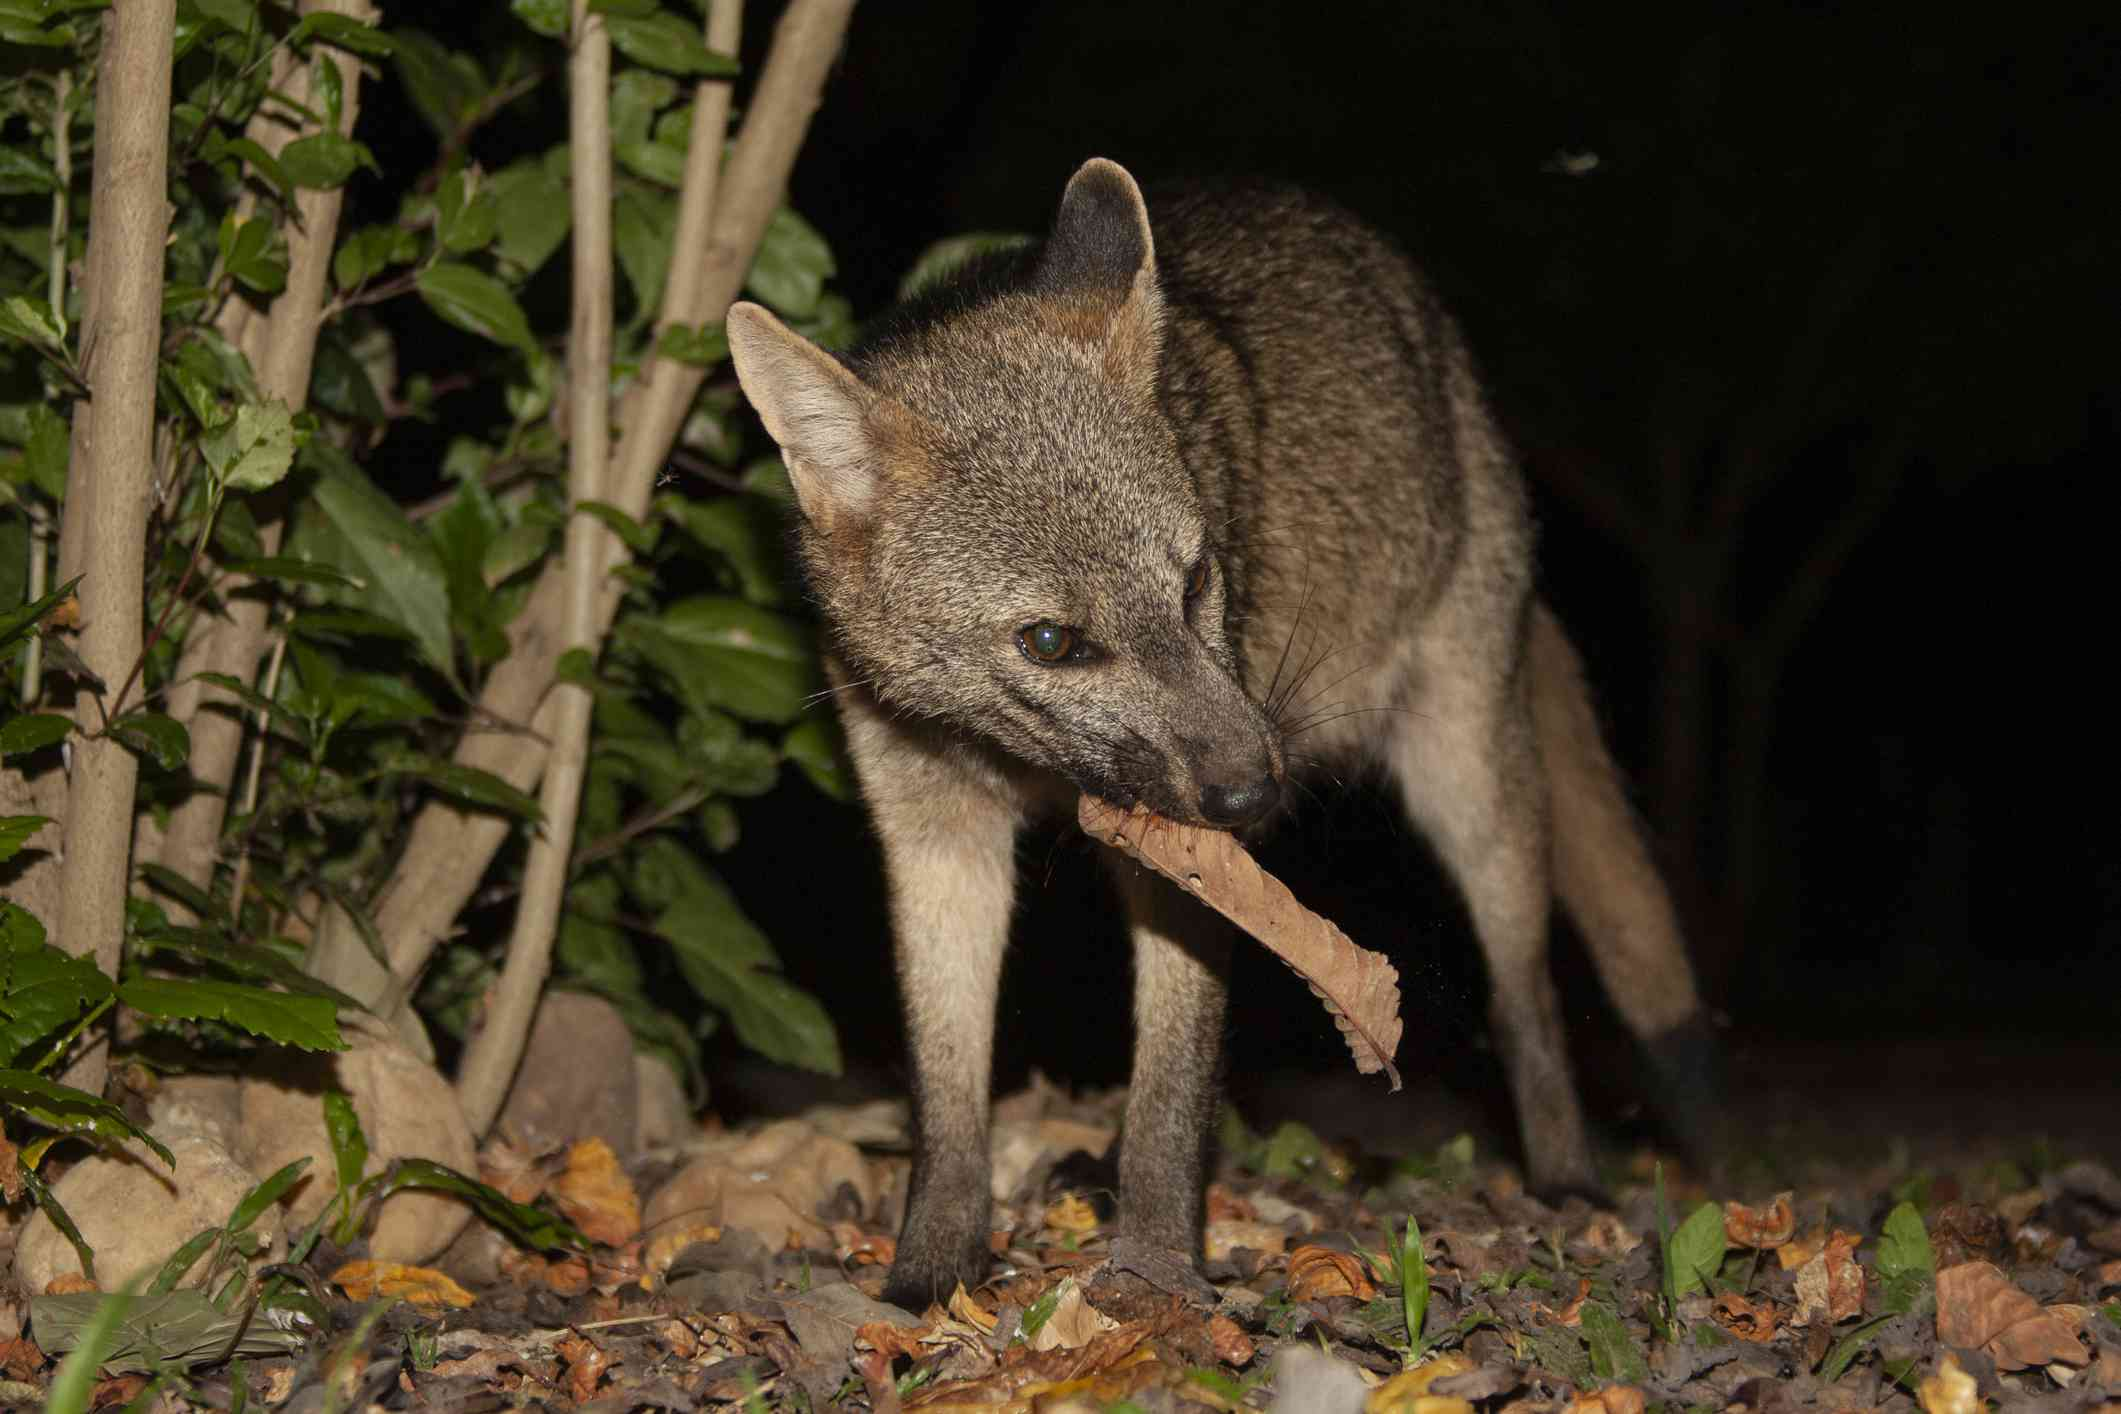 crab-eating fox looking for food at night